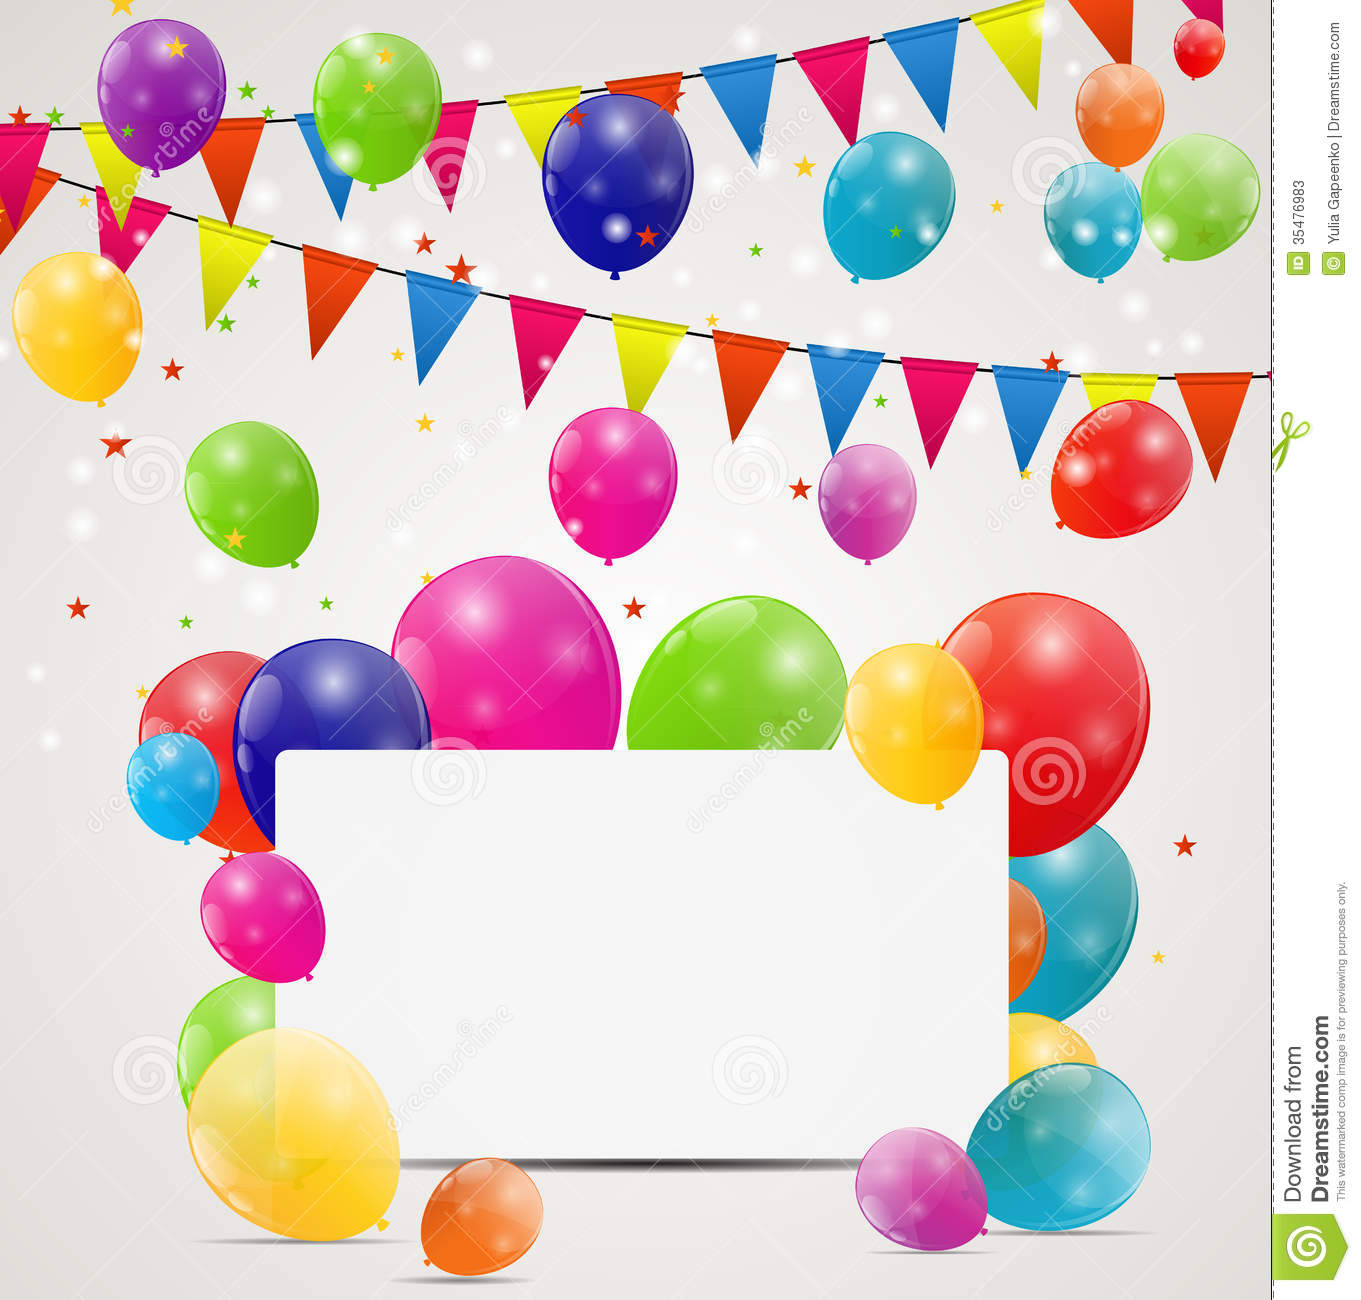 Color glossy balloons birthday card background stock vector color glossy balloons birthday card background bunch design bookmarktalkfo Choice Image